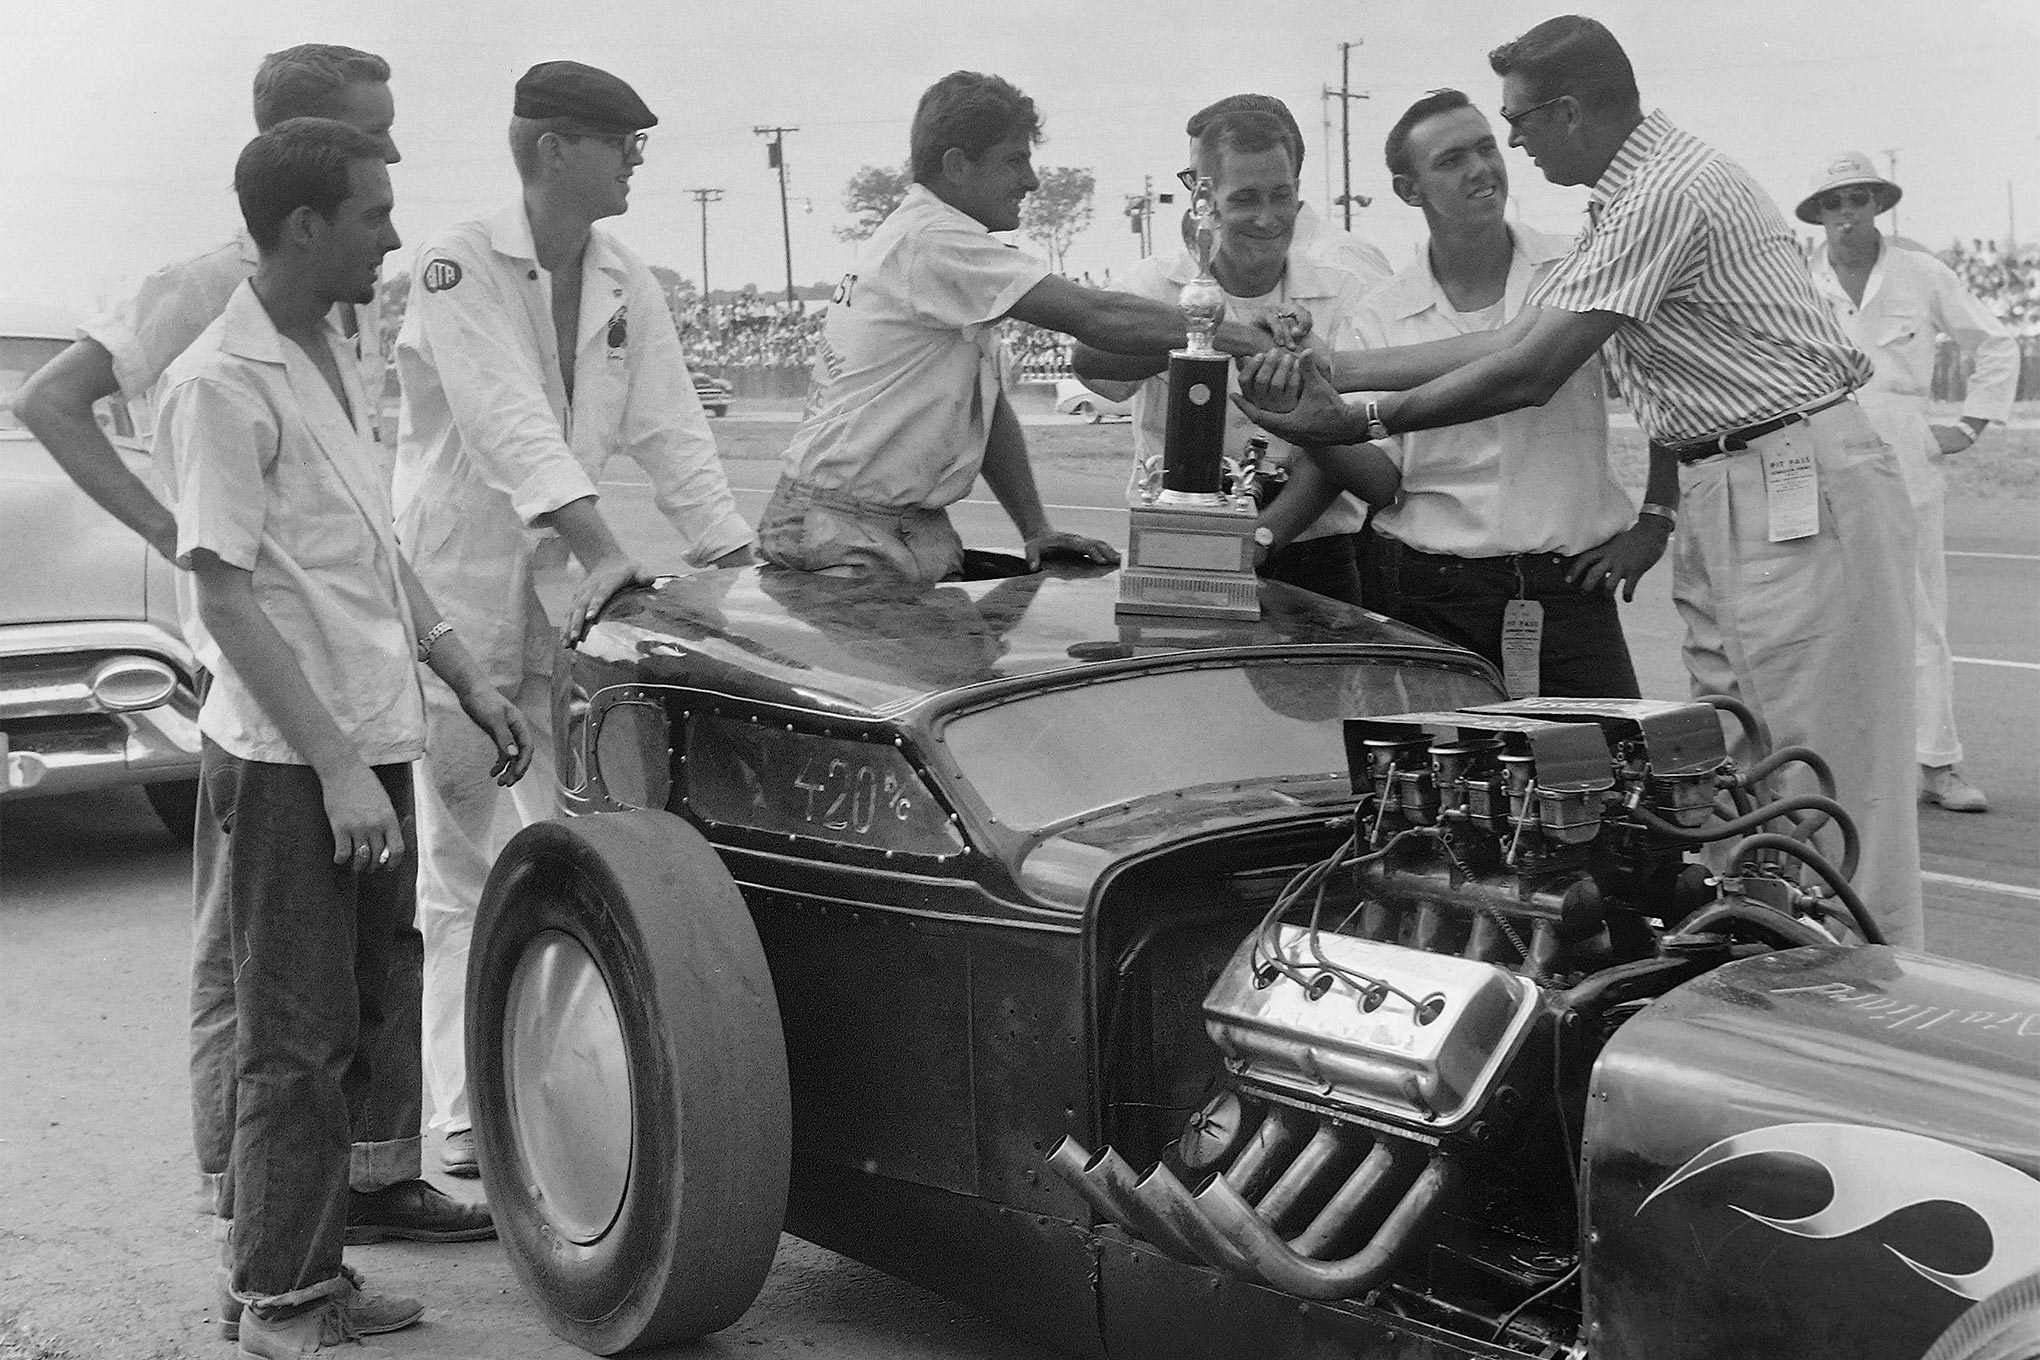 Wally's presidential duties included personally presenting awards. The A/Competition Coupe/Sedan trophy was claimed by Lee Roy Mackey, whose near-perfect Nationals further included an NHRA speed record (119.68) and runnerup Top Eliminator finish. Note the early zoomie headers, seven full seasons before becoming fashionable for Chryslers.